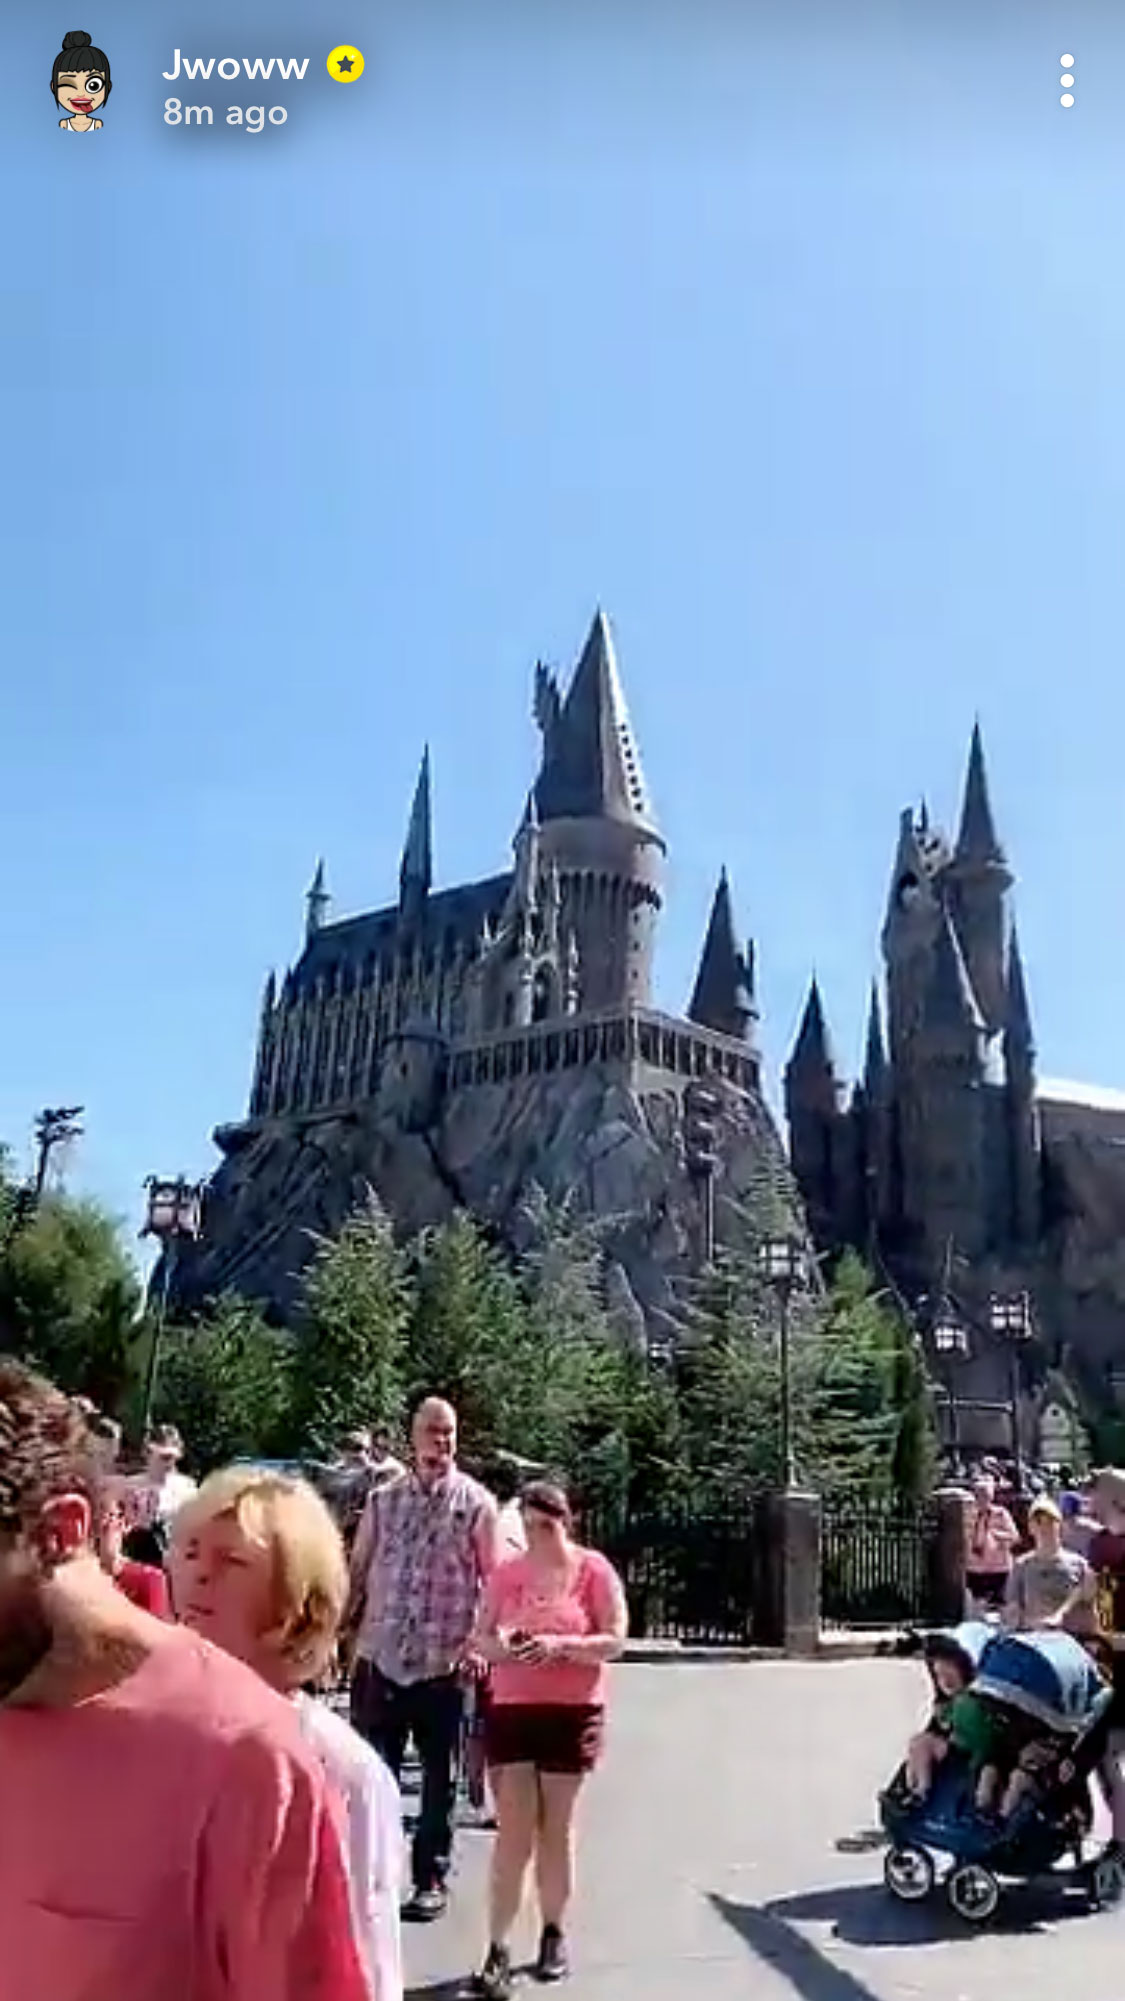 """JWoww's 'Jersey Shore' Pals Show Support for Her New Boyfriend As They Visit Harry Potter World Instagram Jwoww and Zack Clayton Carpinello - Farley said in an Instagram video that she was """"bugging out"""" over returning to Universal Studios after more than a decade."""